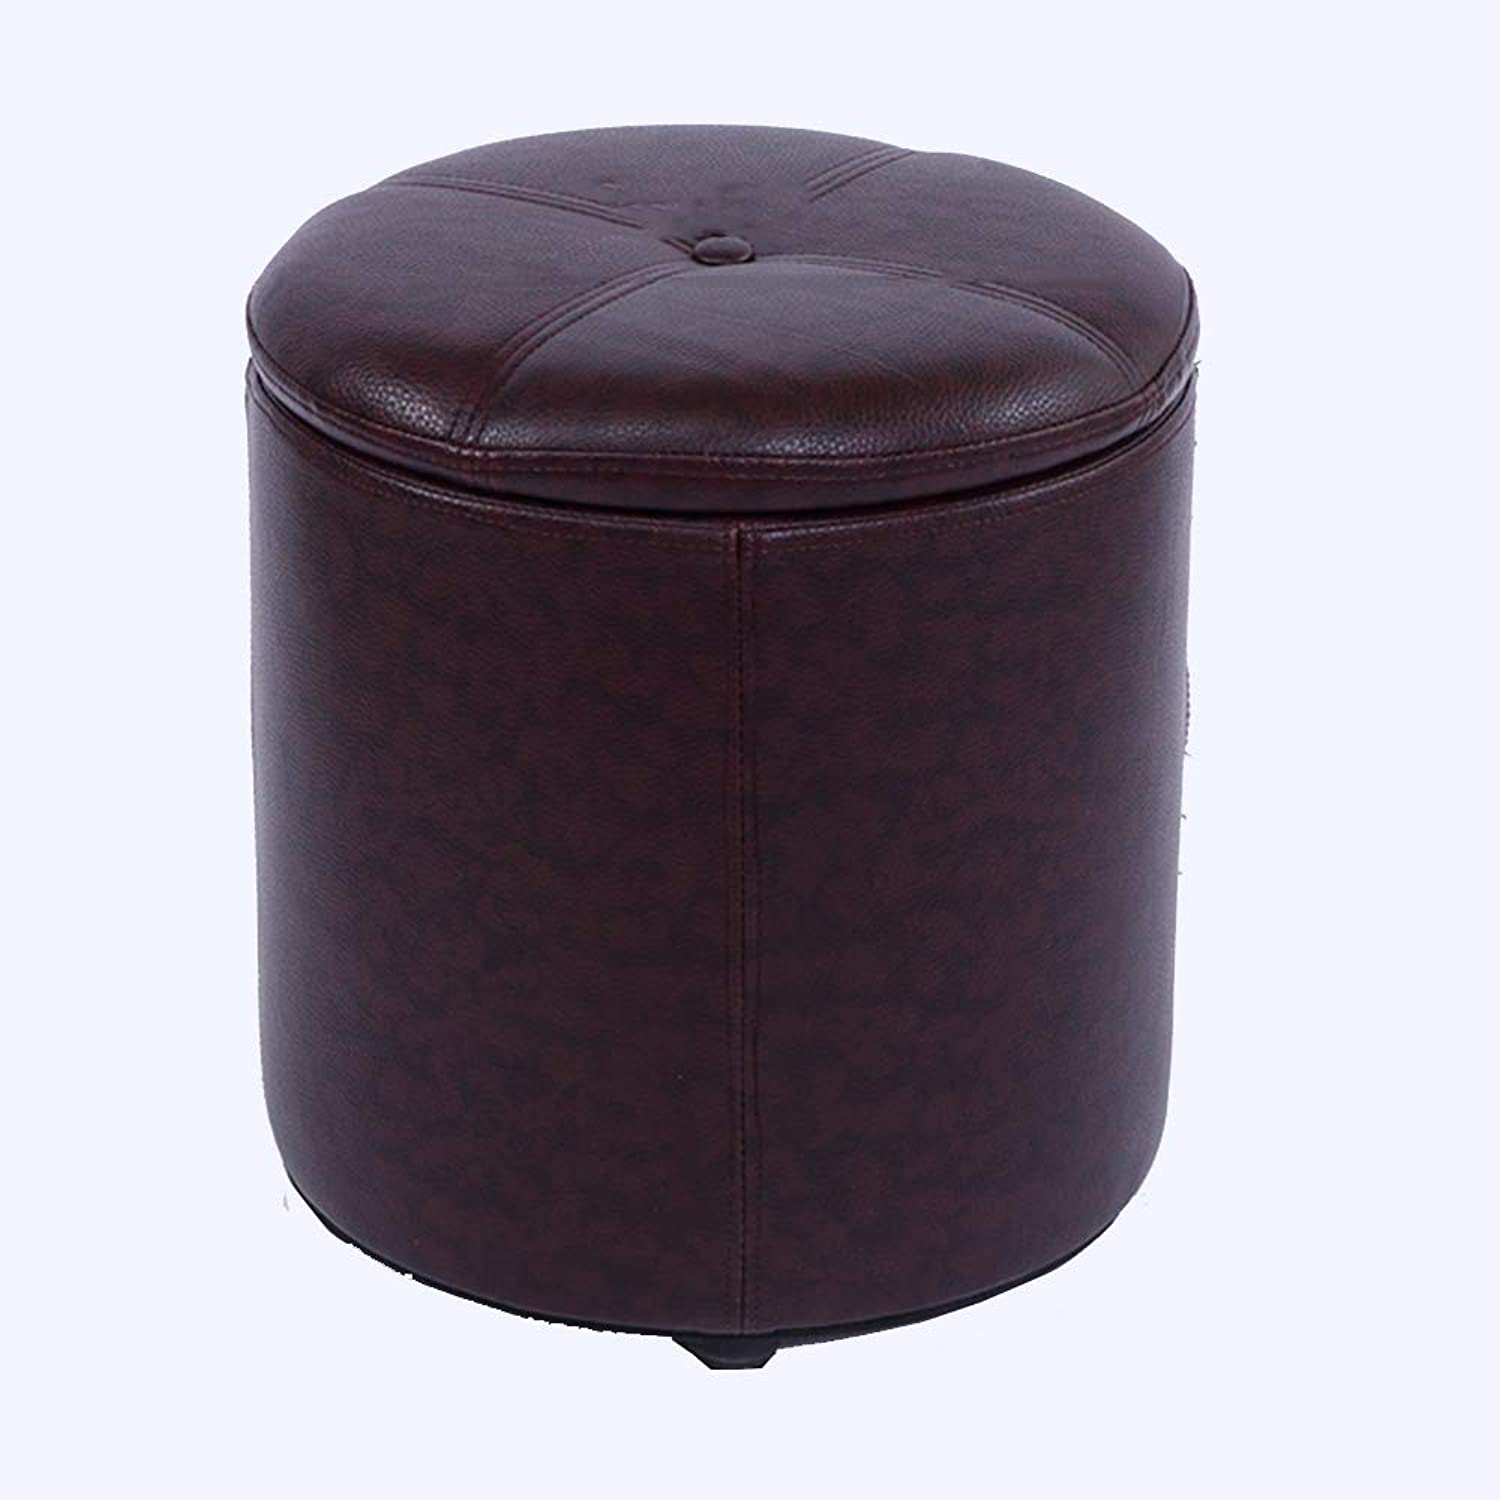 Sofa Stool Change shoes Stool Solid Wood Quality Waterproof PU Linen Creative Multifunctional Makeup Stool (color   Brown)